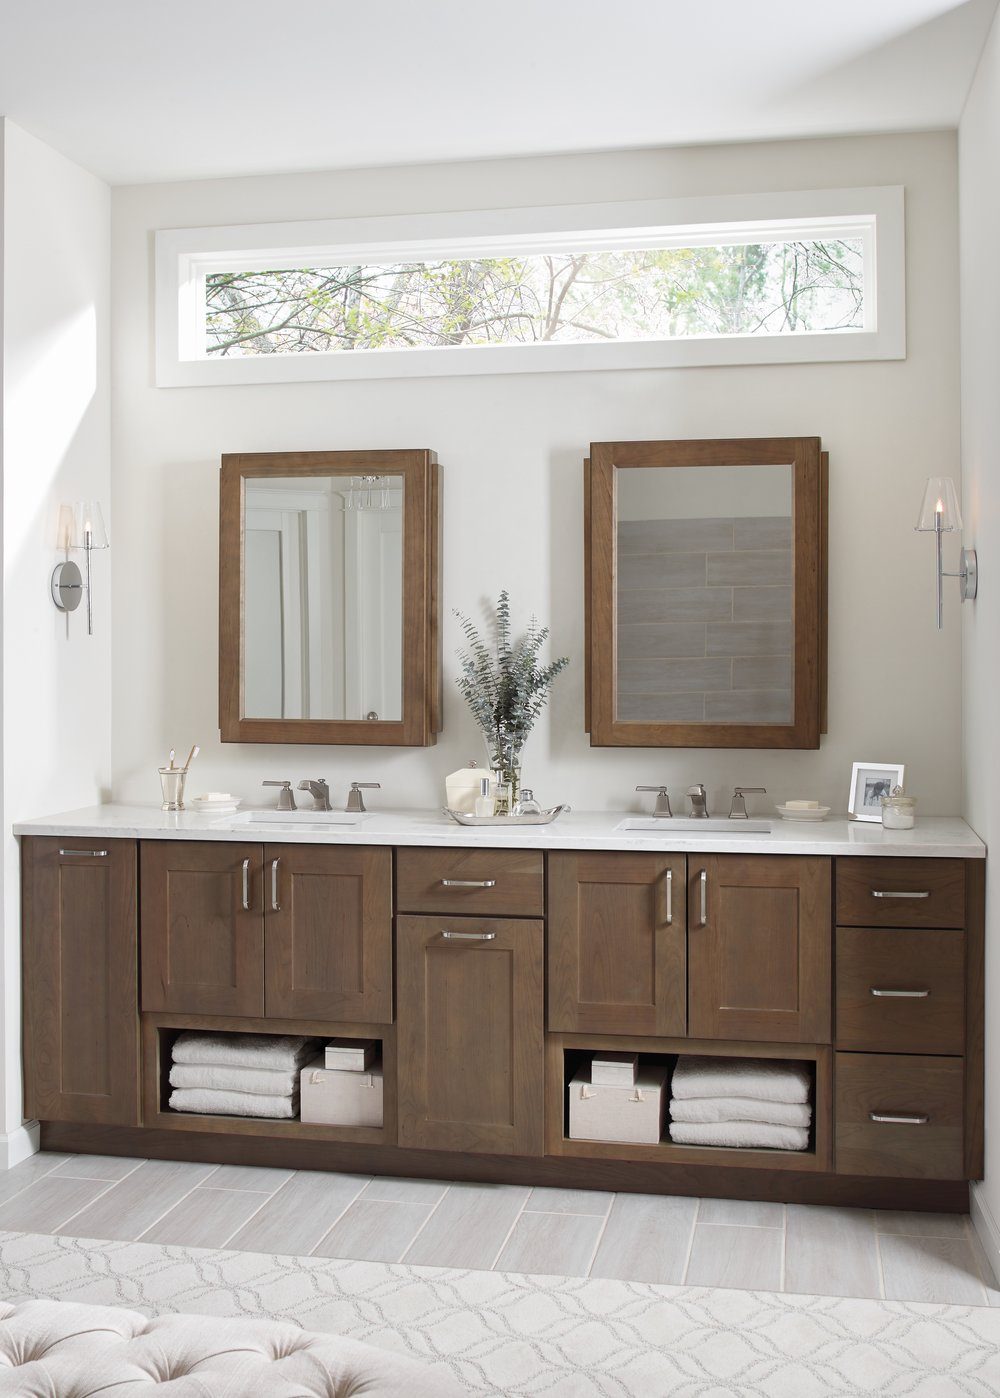 Nicole Janes Design Diamond Cabinets Wood Master Bathroom Double Vanity Medicine Cabinets